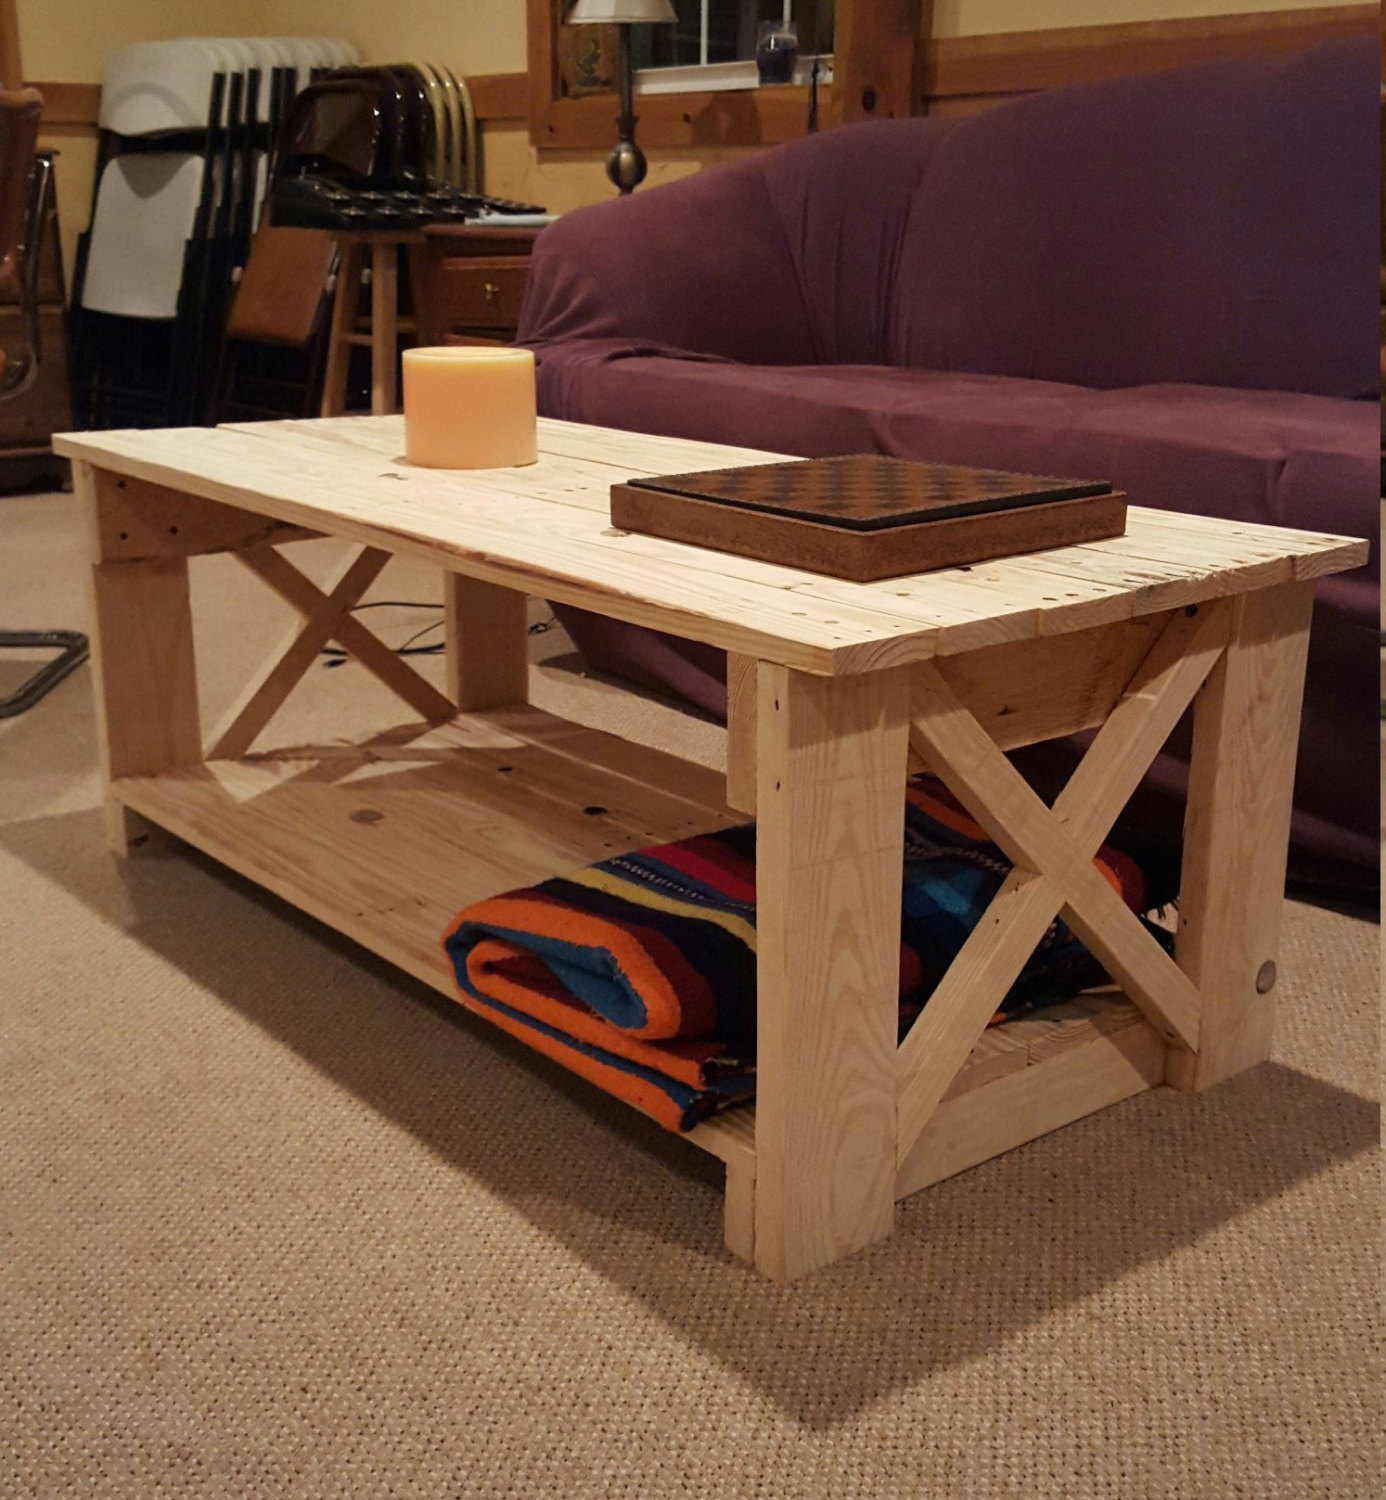 18 Remarkable Furniture Designs Made From Recycled Pallet Wood on Pallet Design  id=98147